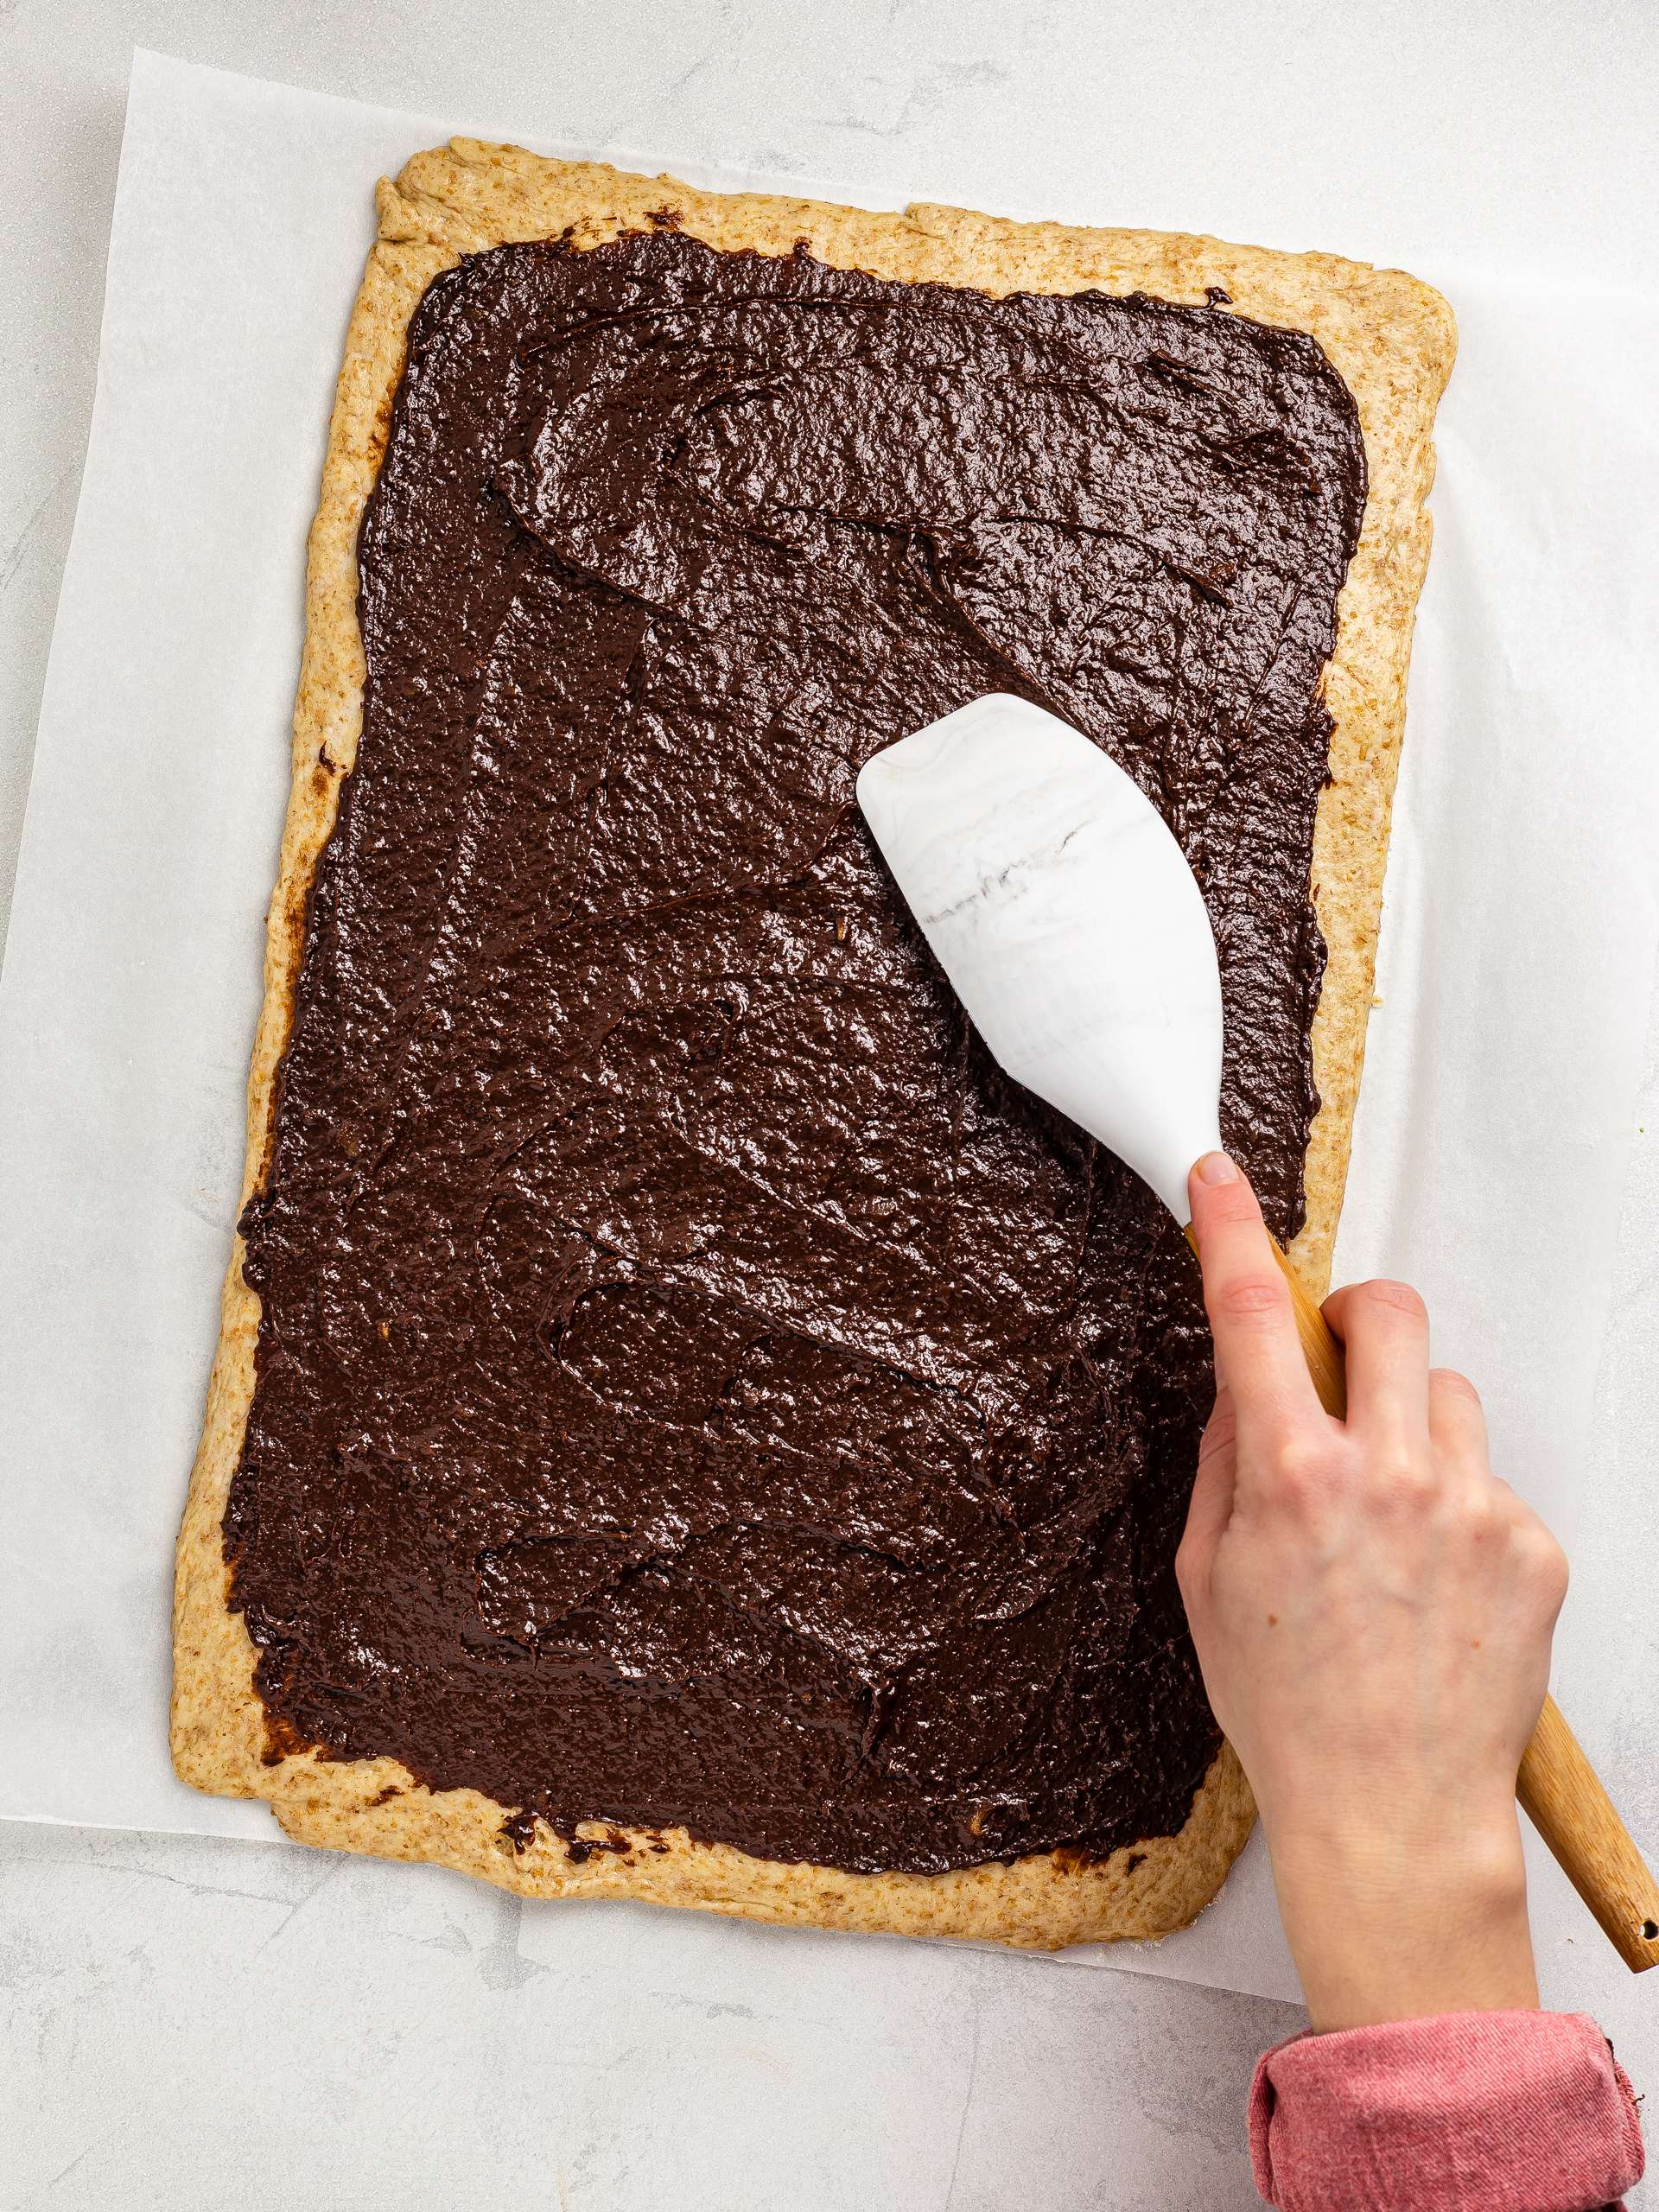 chocolate date filling spread over the dough base